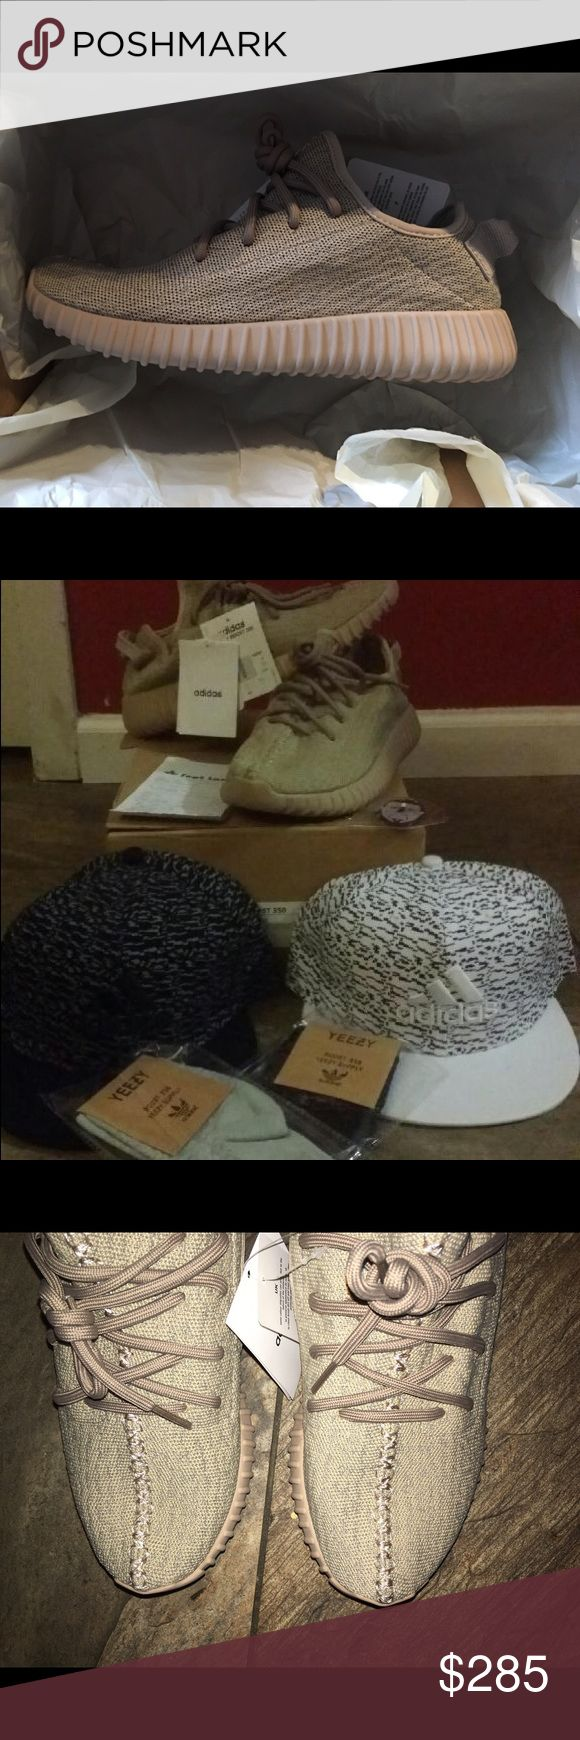 Bundle!! Oxford tan yeezys size 7-8!! Brand new never worn!! Everything is original. This is a bundle so a hat, a pair of socks, a keychain and the receipt will be given. Price is not firm so feel free to make offers. Feel free to message me if you have any questions. Adidas Shoes Athletic Shoes